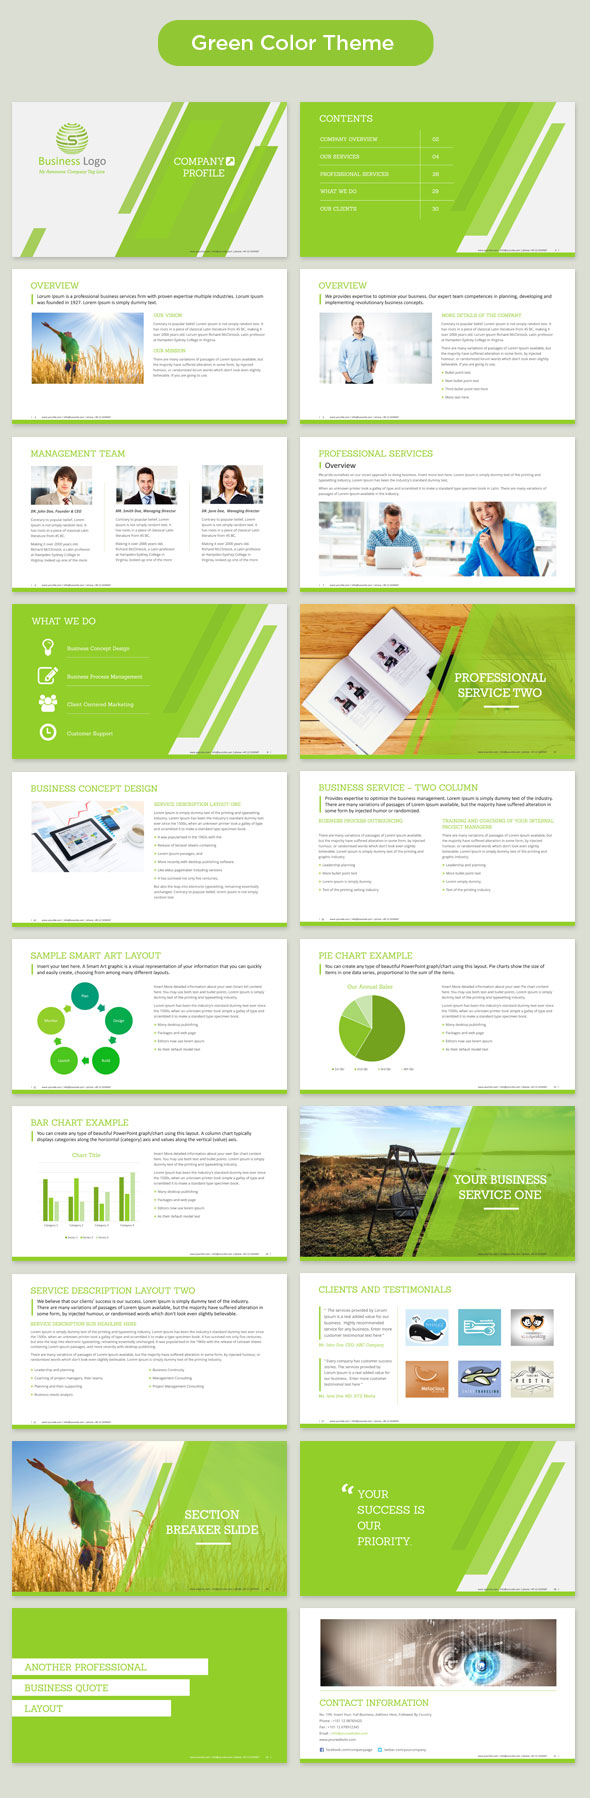 Company profile powerpoint template 350 master ppt slide templates corporate profile powerpoint template green accmission Choice Image